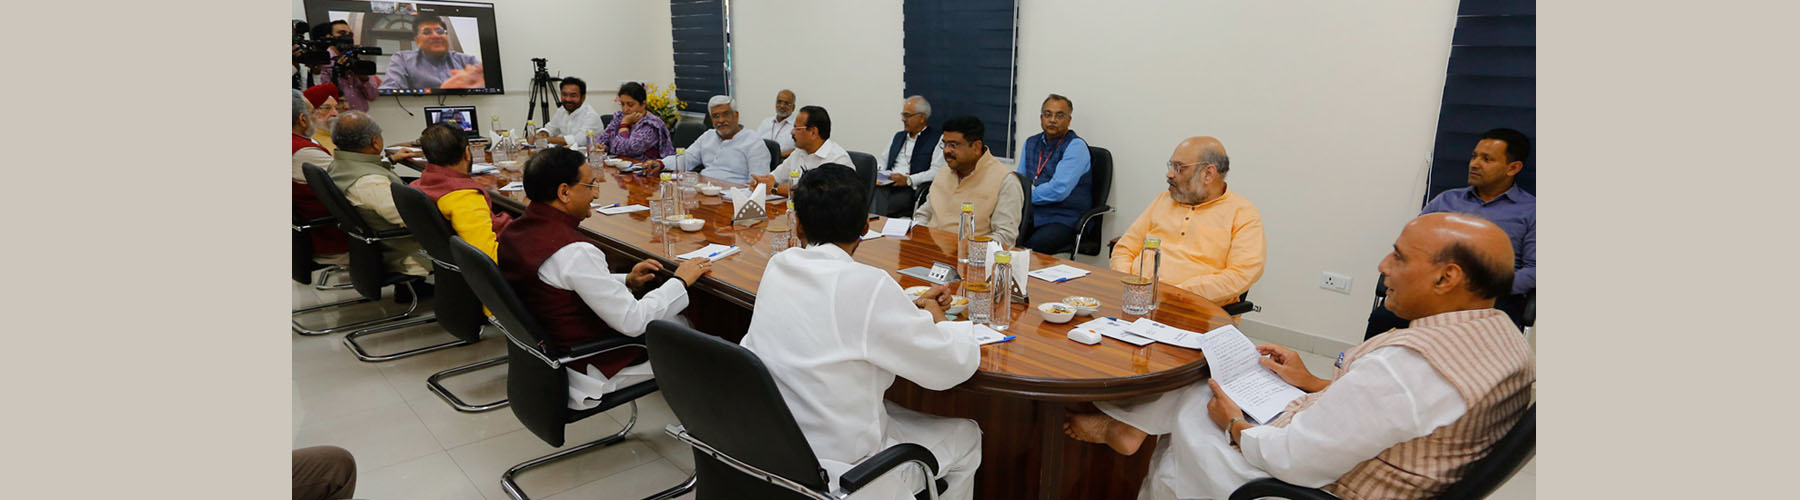 Raksha Mantri Shri Rajnath Singh chairing meeting of Group of Ministers to review measures undertaken to fight COVID-19, in New Delhi on Sunday, March 29, 2020.